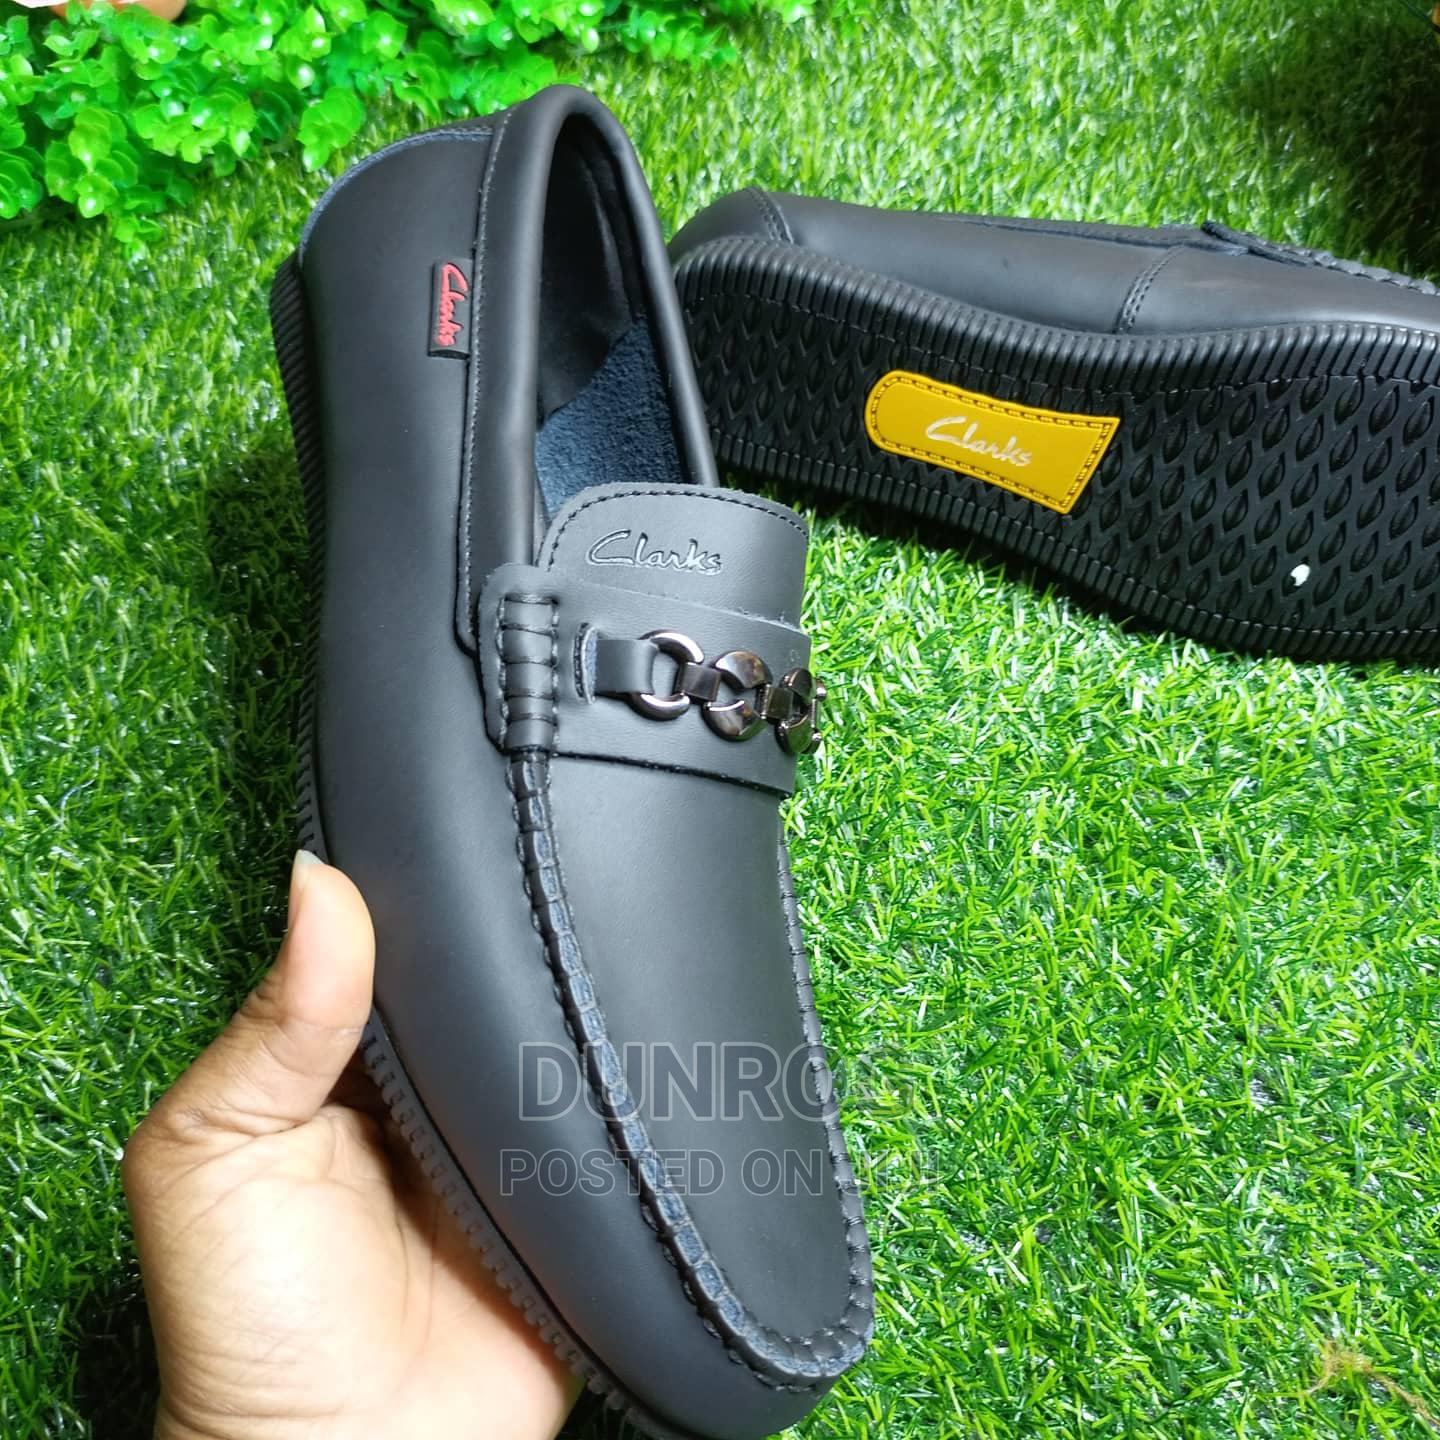 Quality Clarks Mens Loafers From 42 to 45